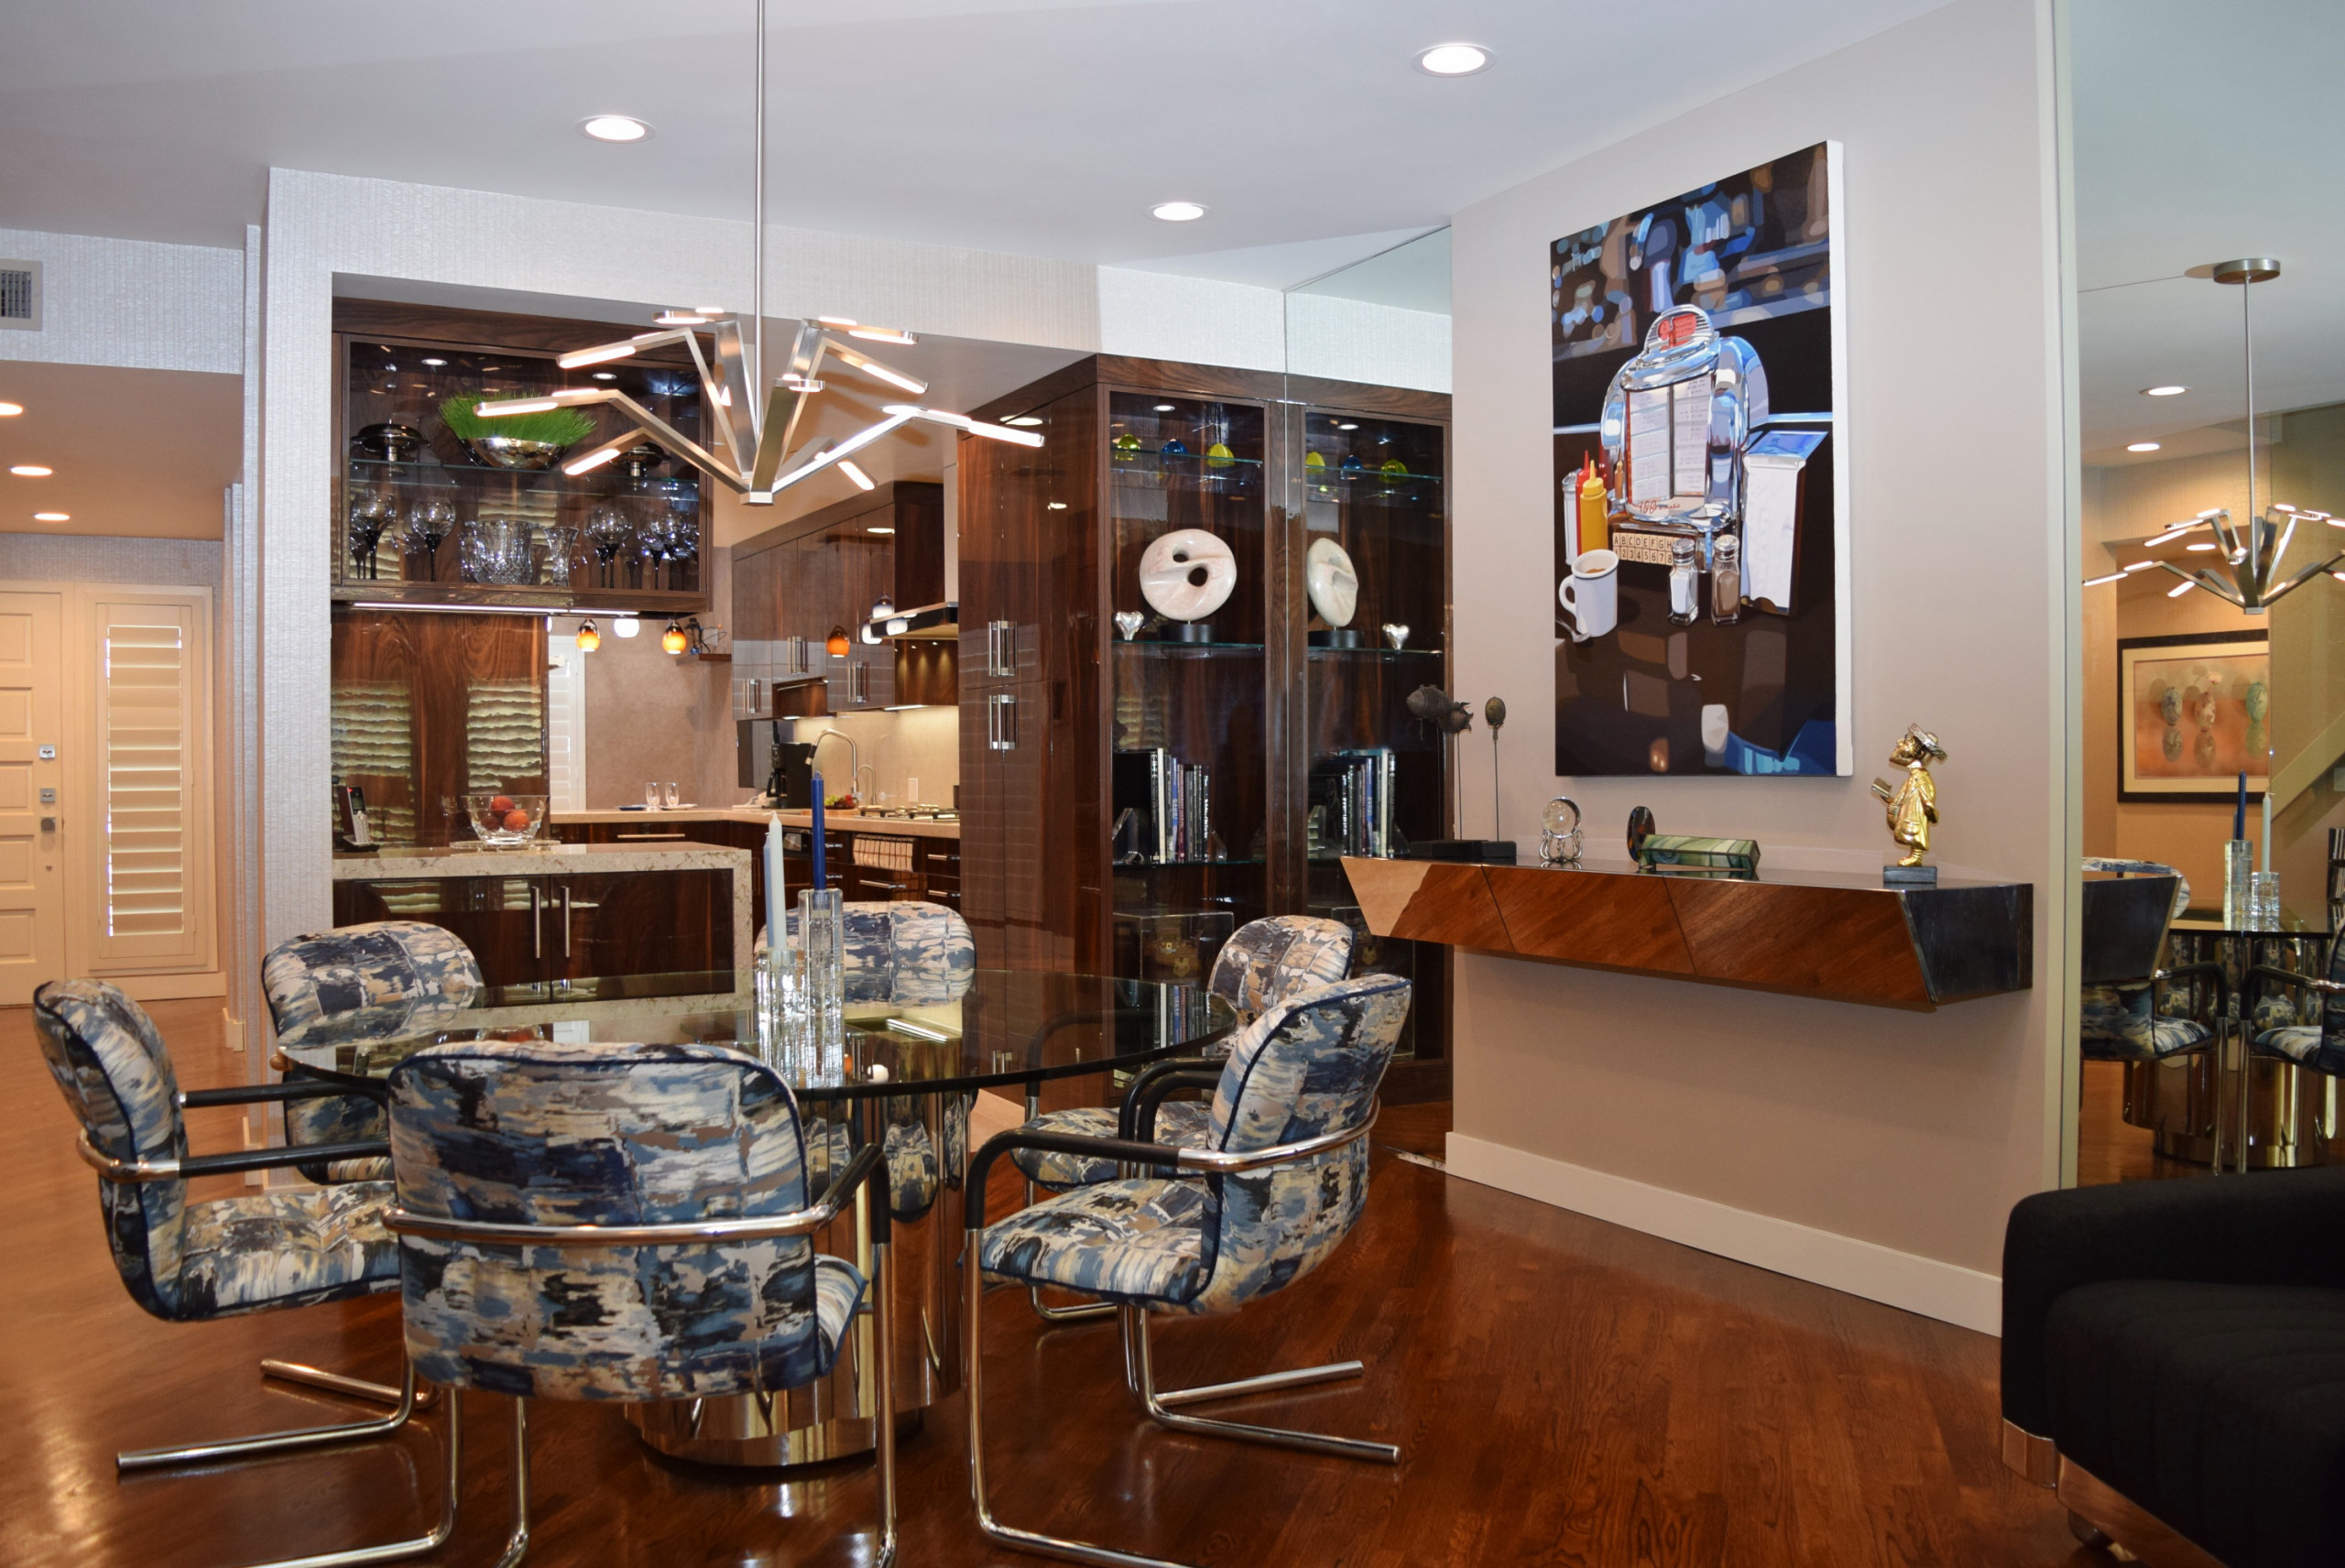 My Contemporary Kitchen, Dining and Living Room Remodel in Marina Del Rey